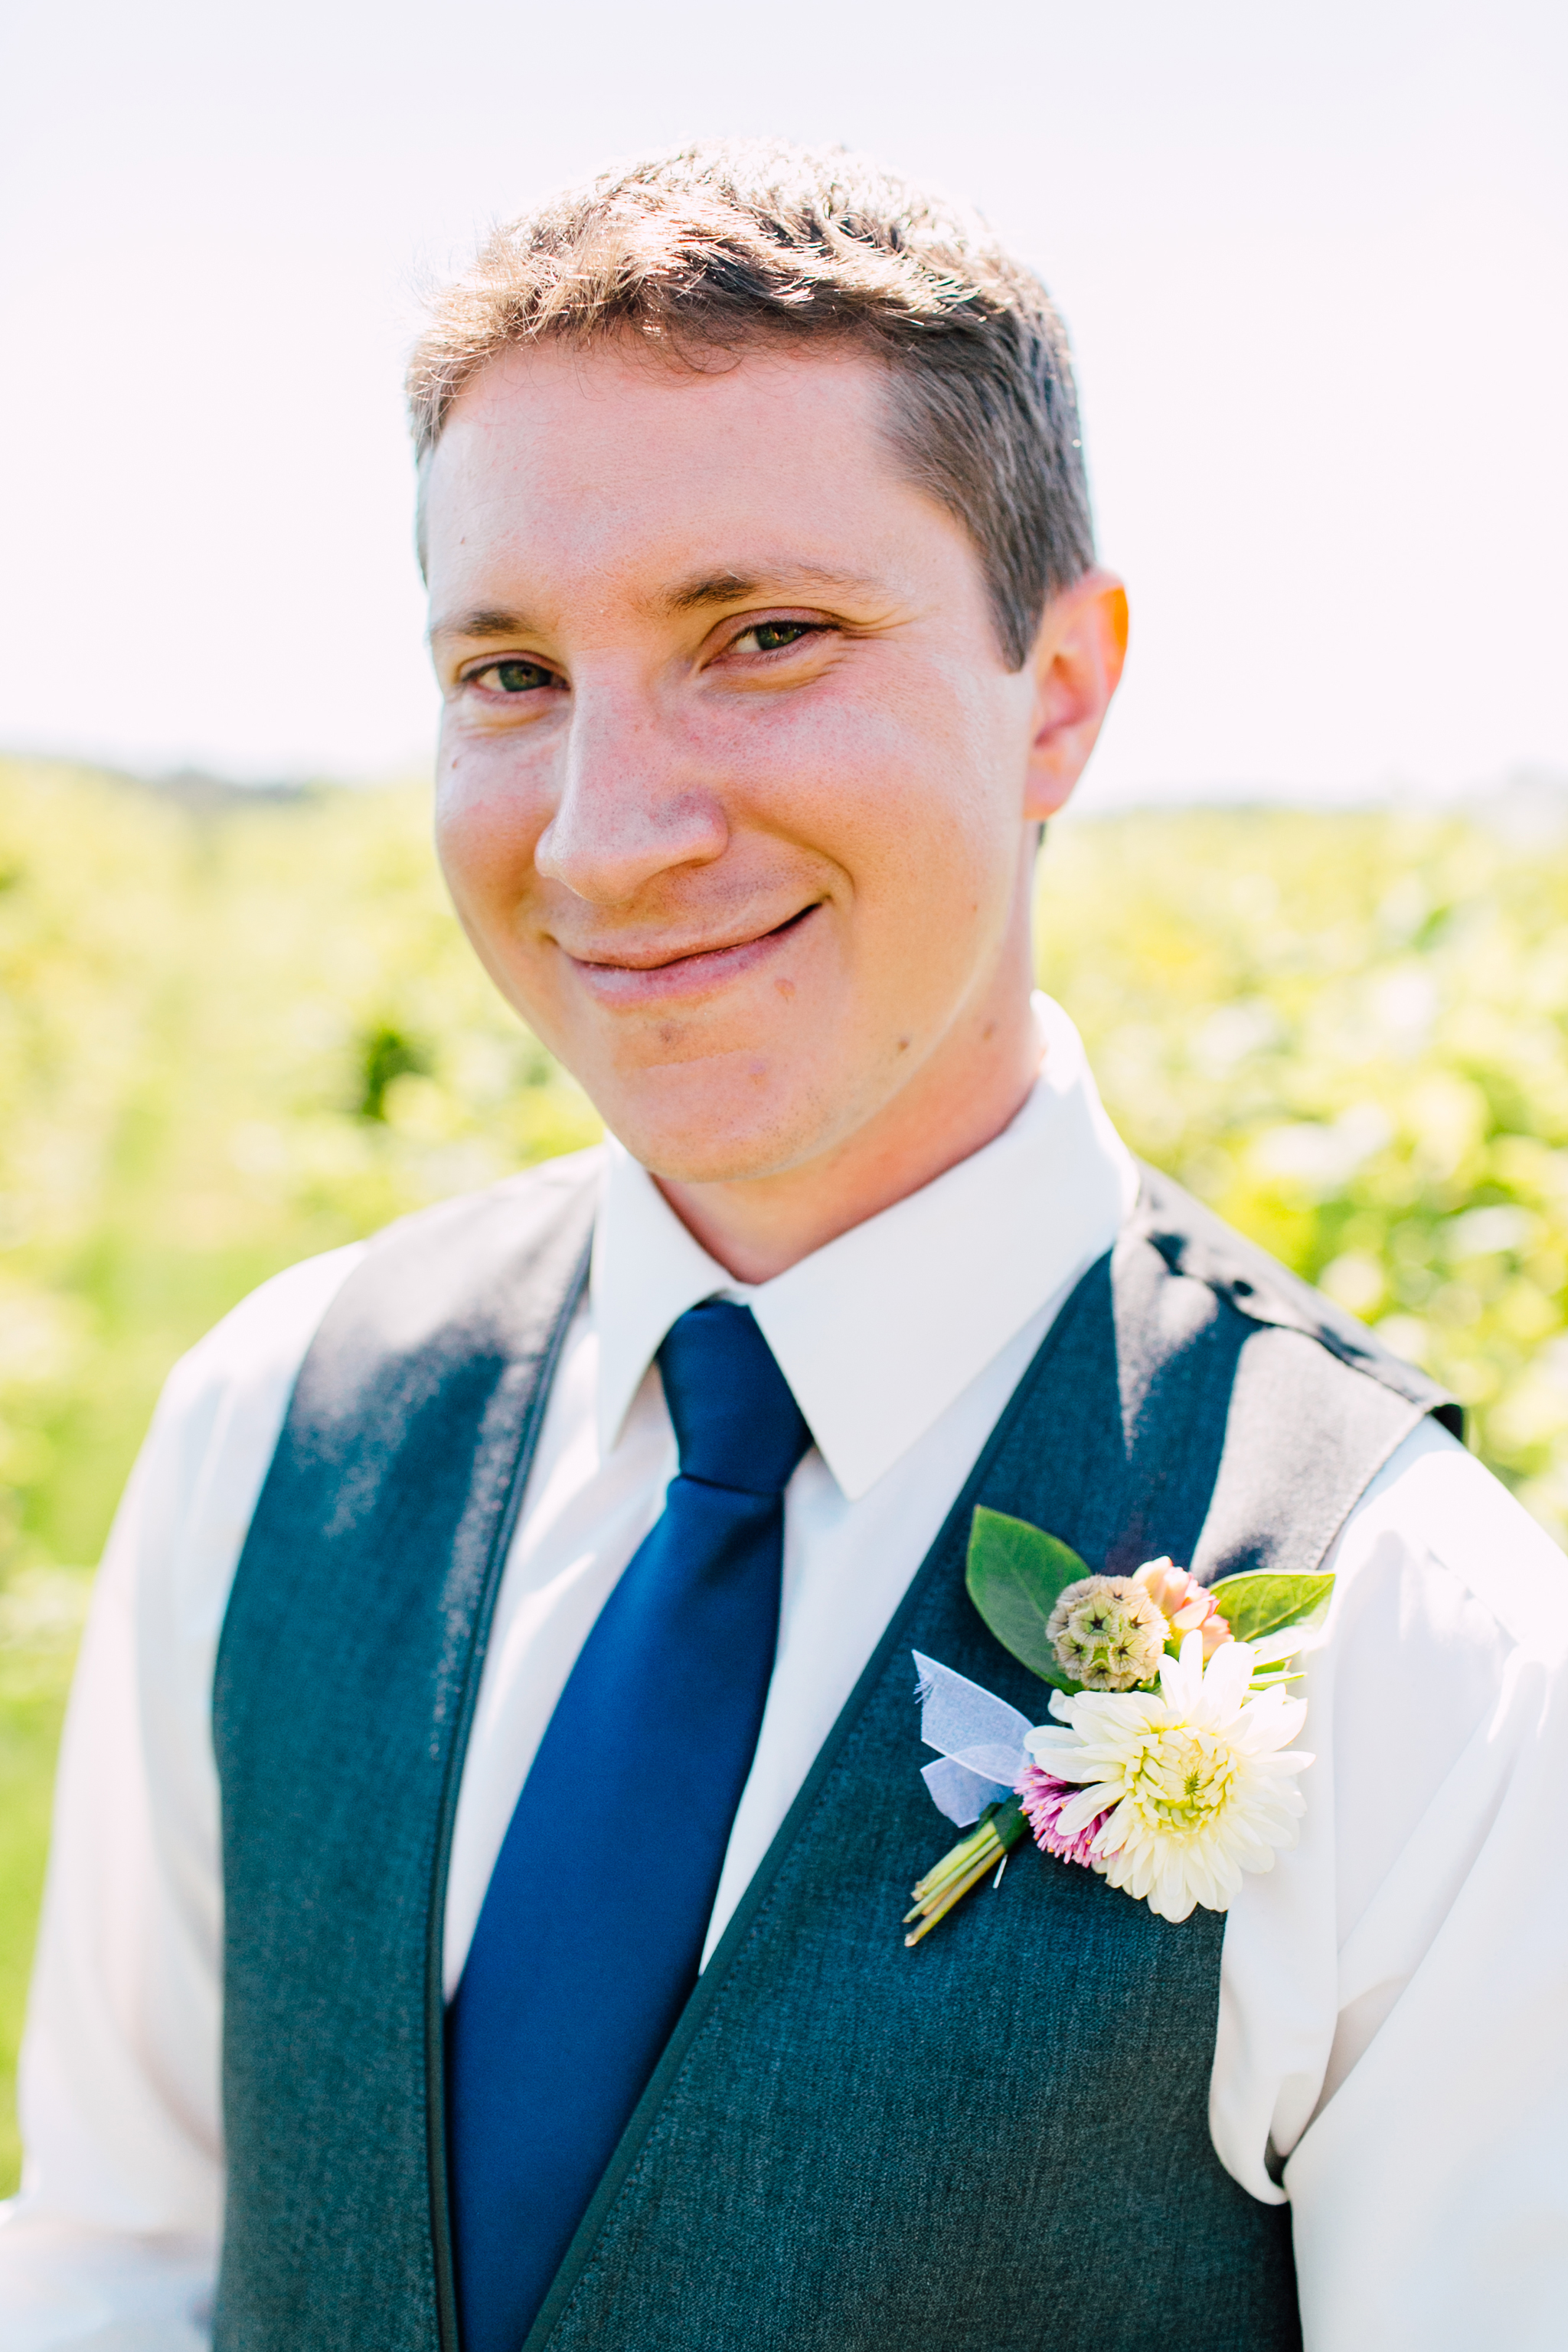 036-bellingham-wedding-photographer-samson-winery-katheryn-moran.jpg